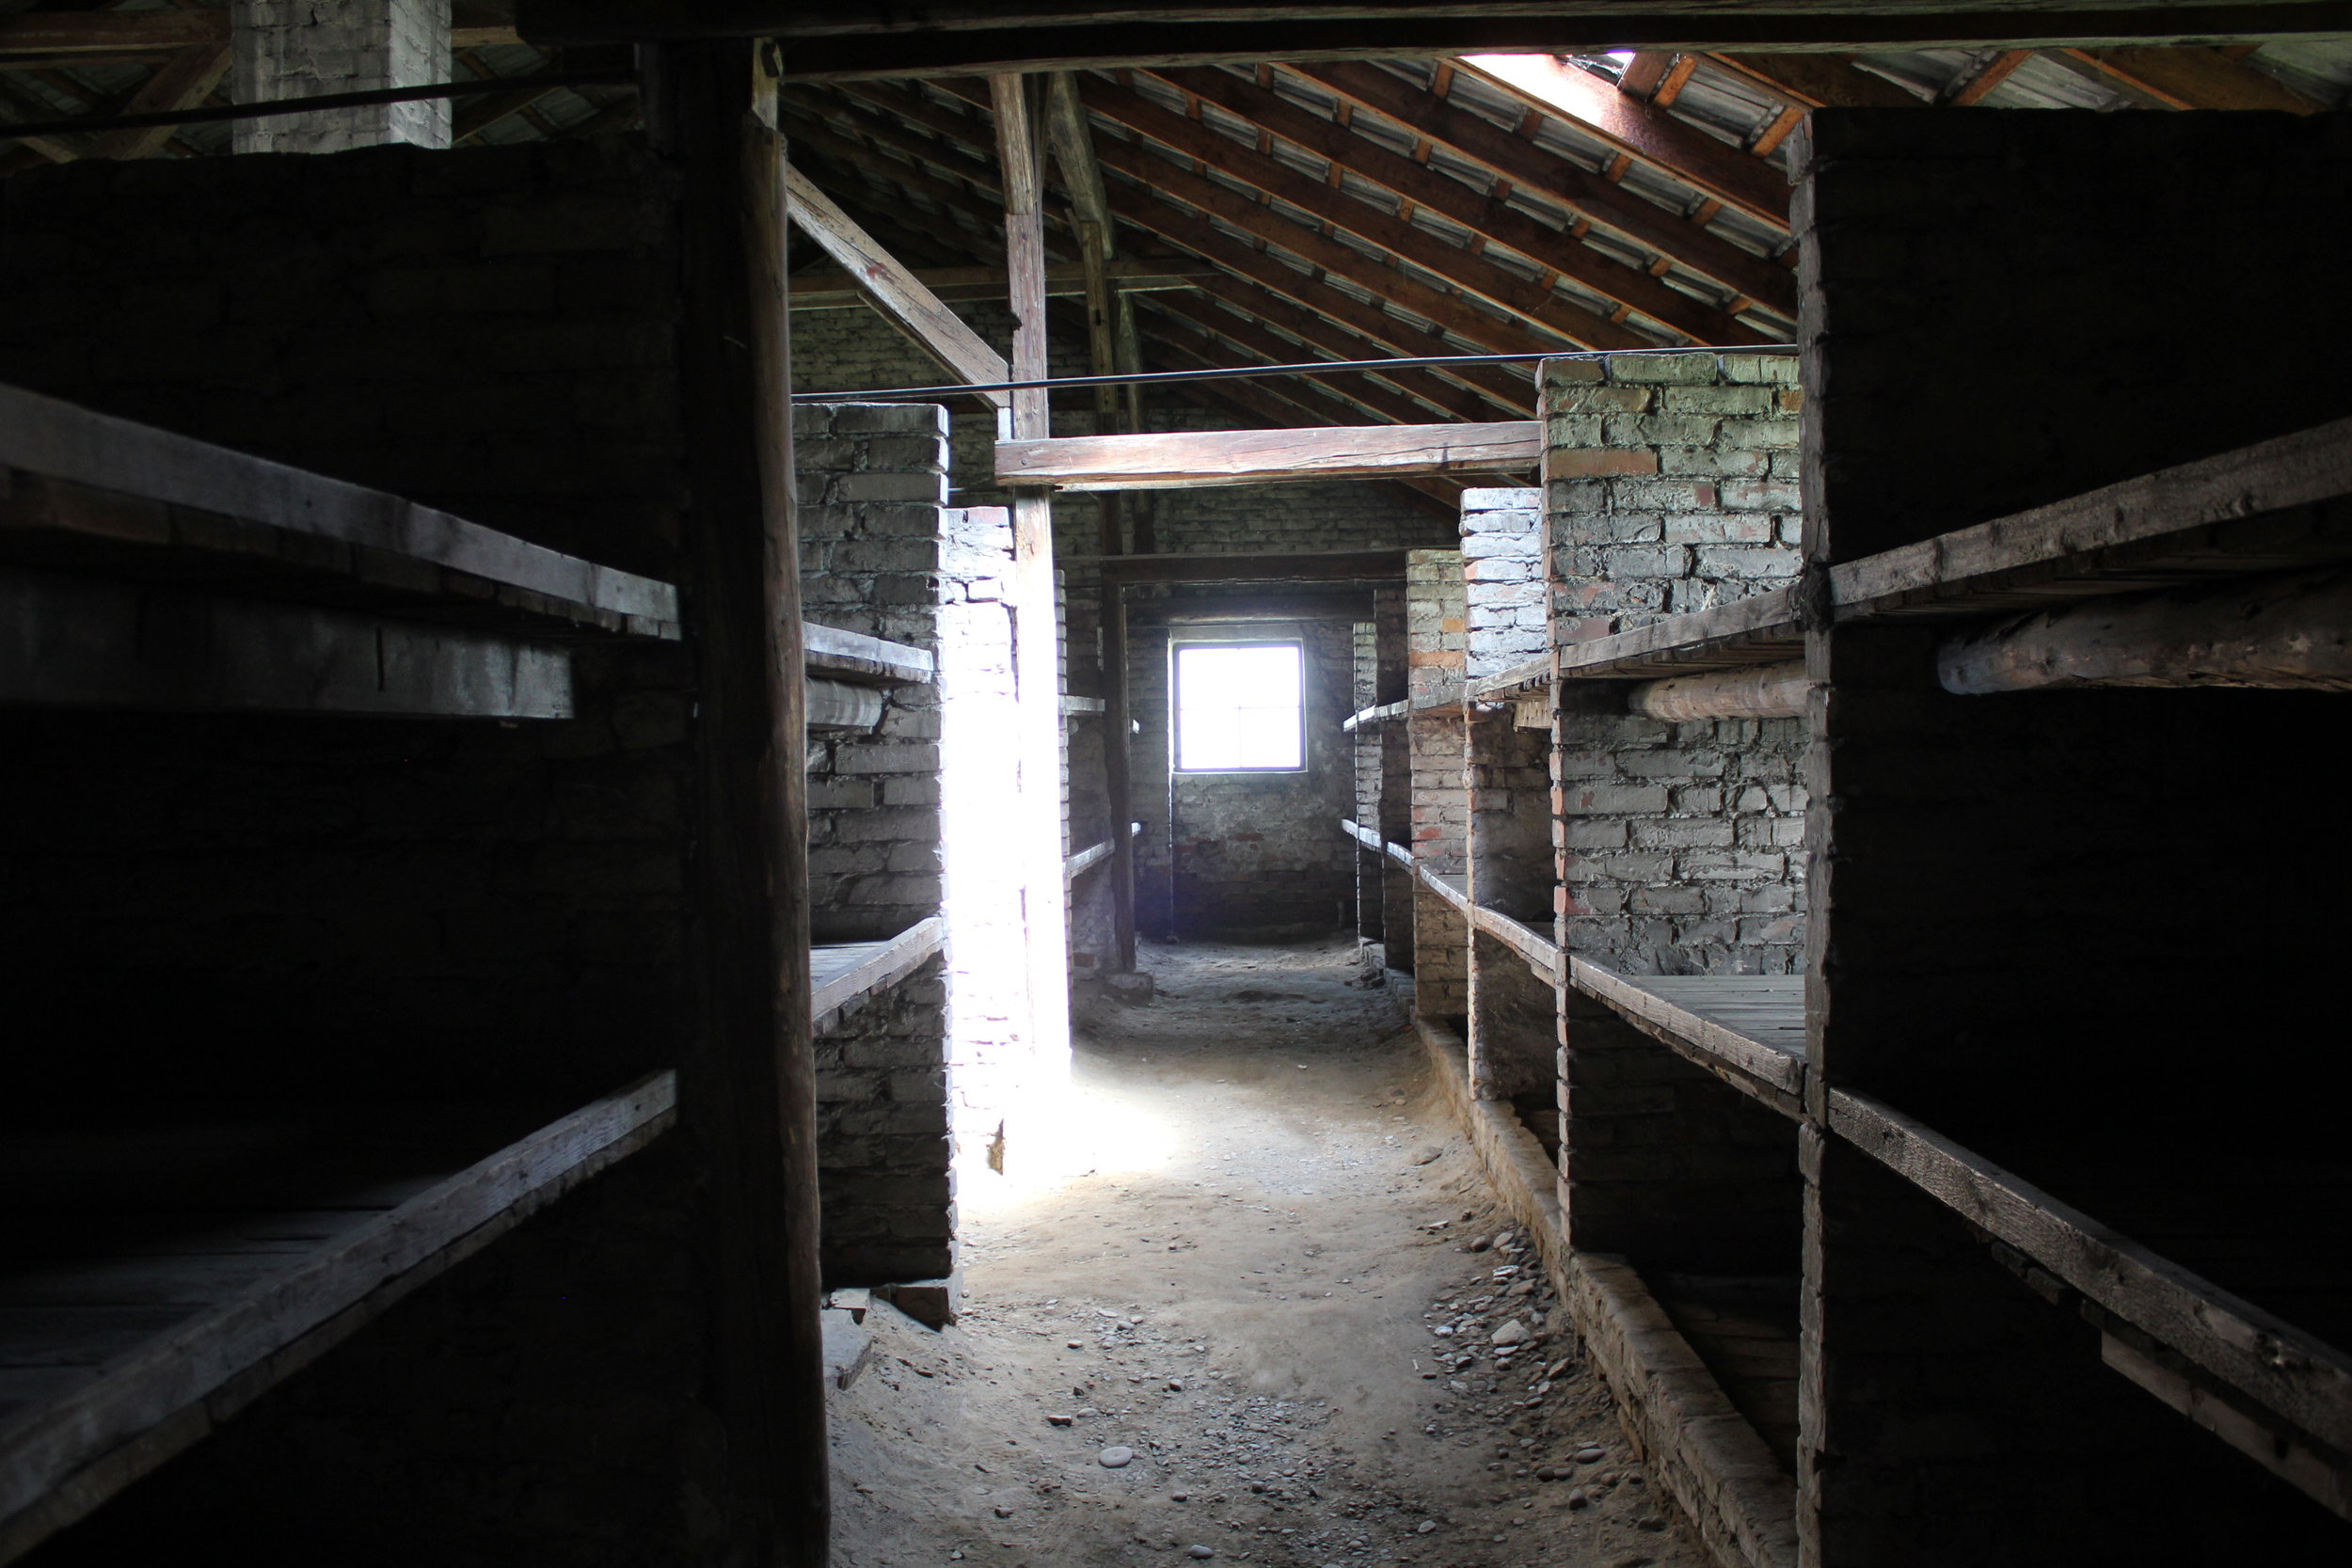 """The last stop of our tour, the """"Death Barrack"""": this barrack housed women prisoners who were identified as being no longer fit to work and were to be sent to the gas chambers"""